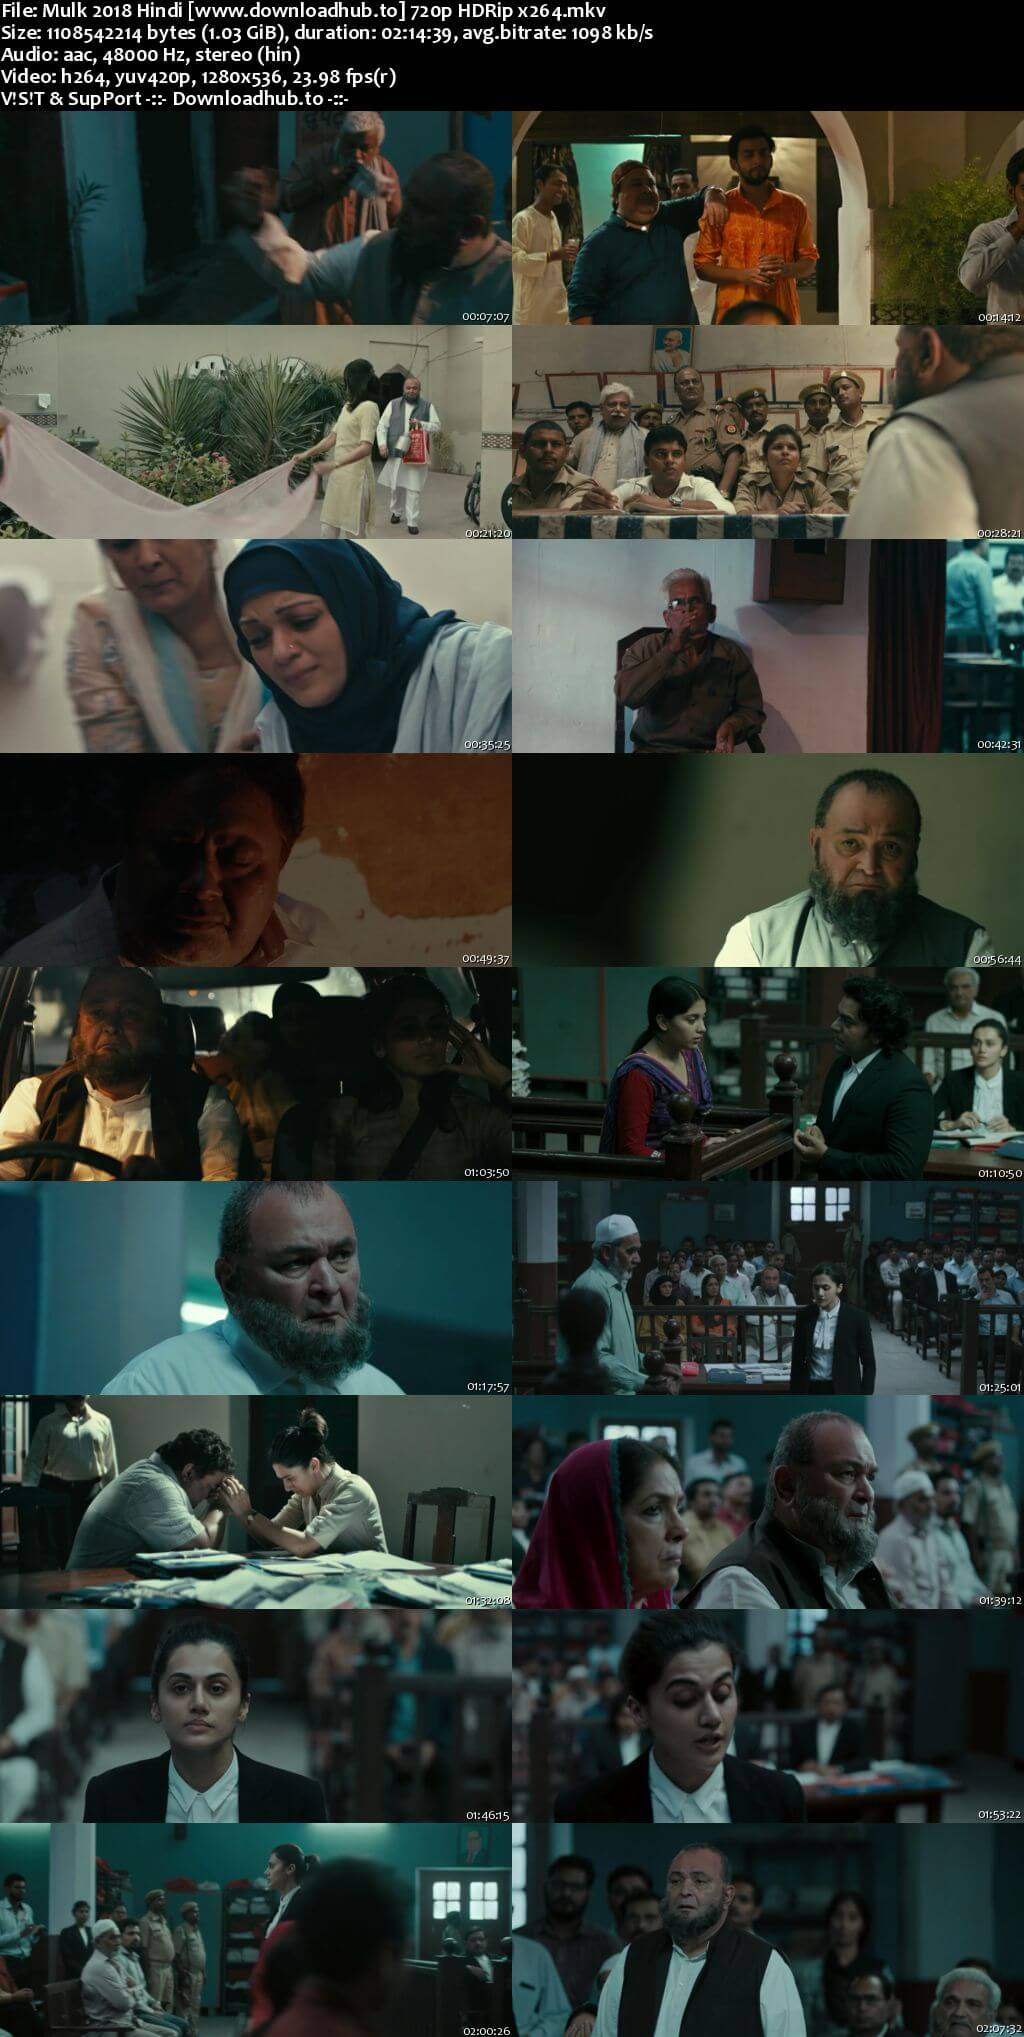 Mulk 2018 Hindi 720p HDRip